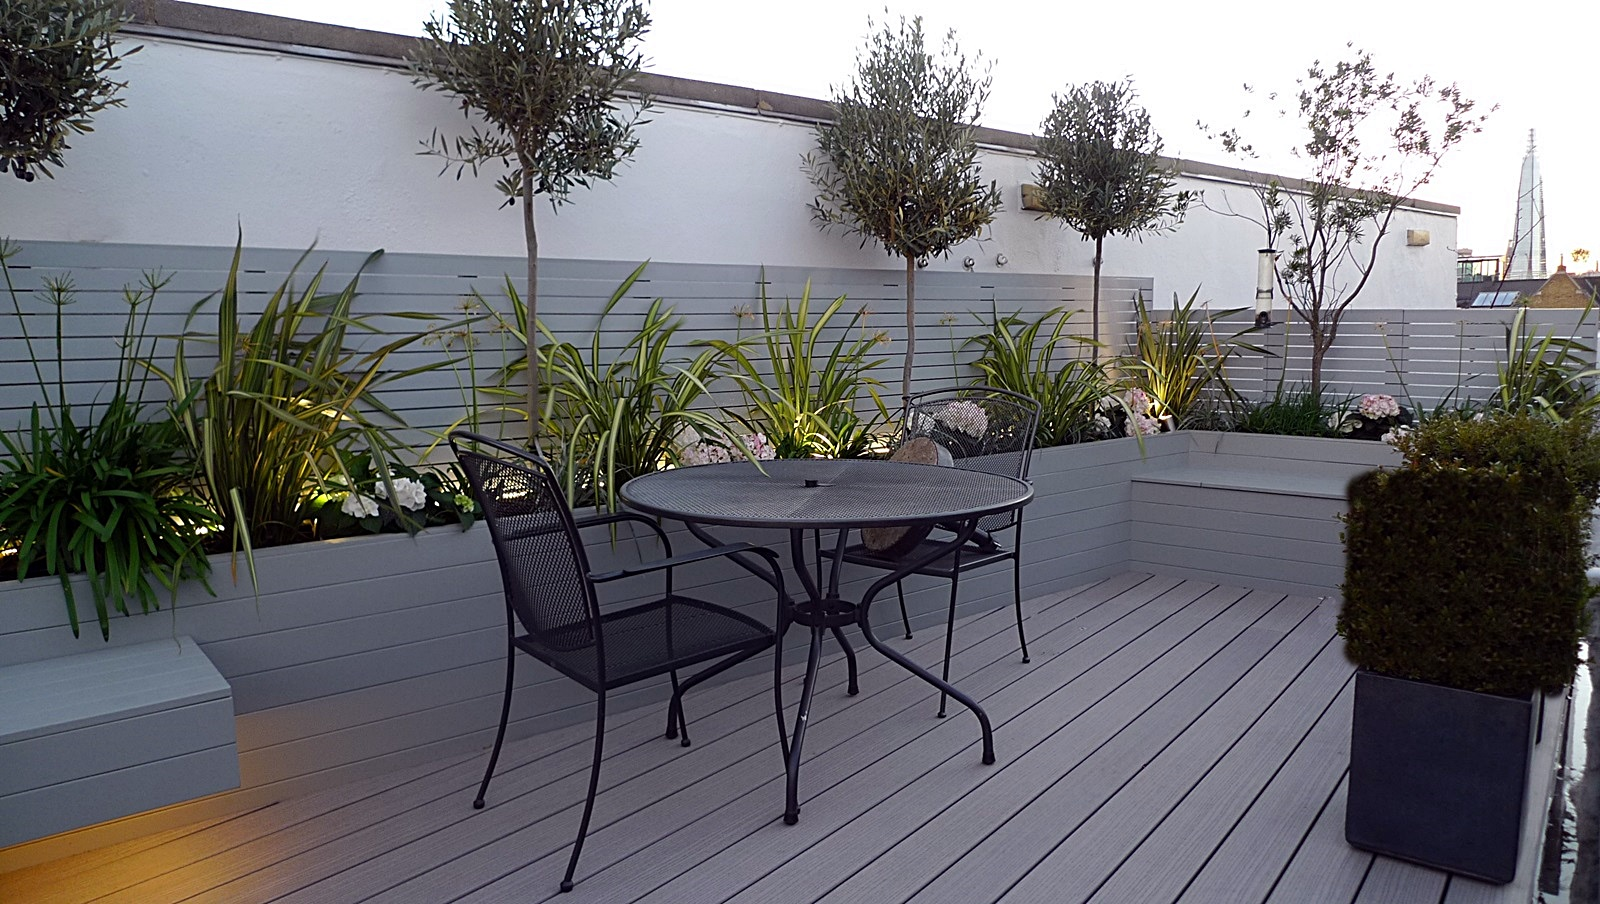 roof deck garden design horizontal hardwood trellis screen in grey under bench lighting fulham chelsea docklands tower bridge battersea london